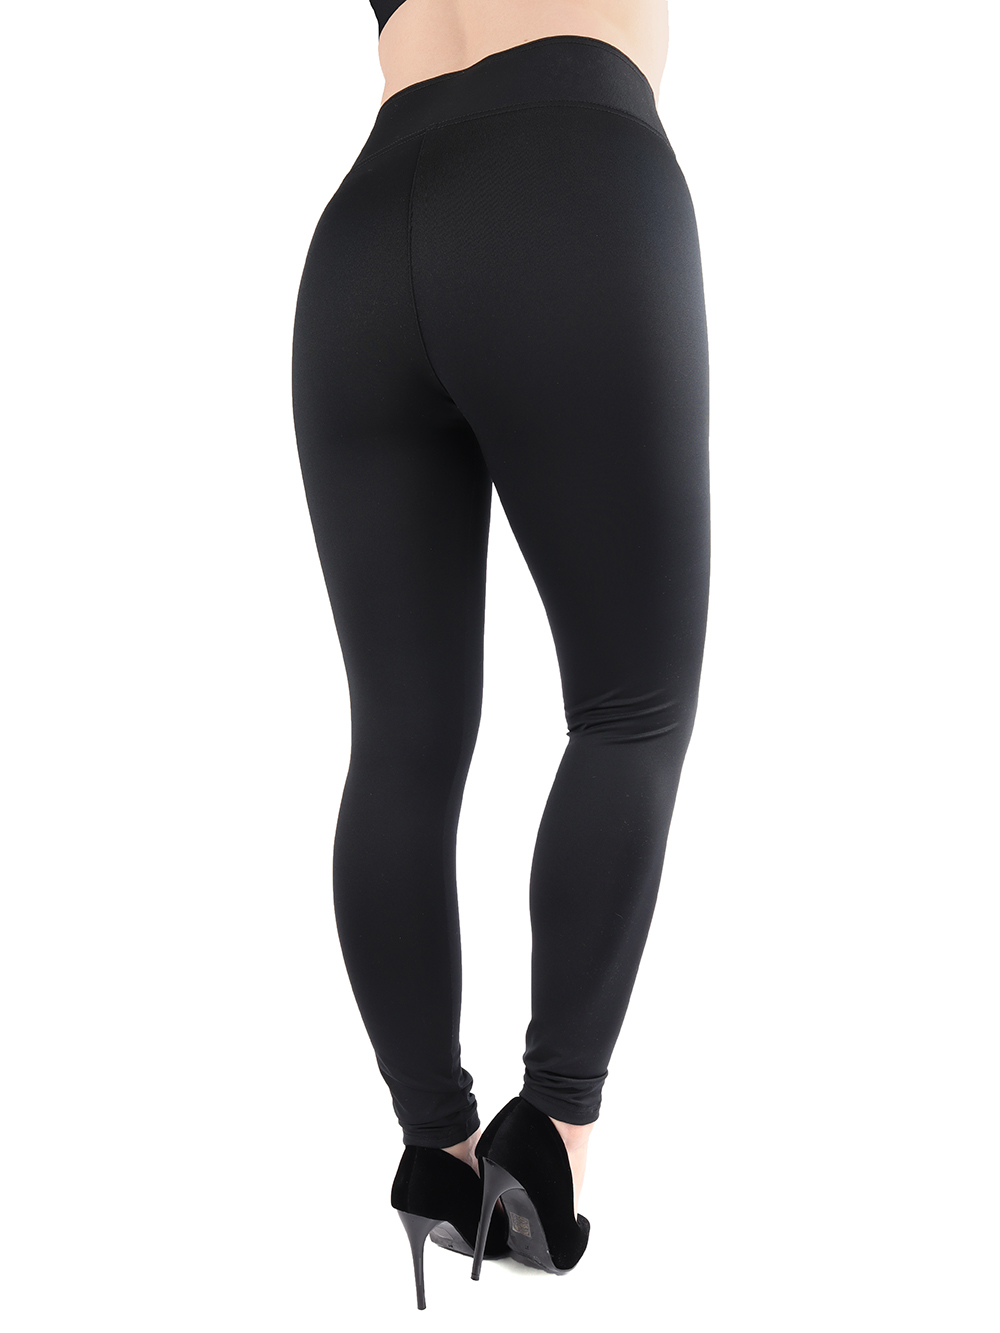 P.C. Stop Cellulit leggingsit